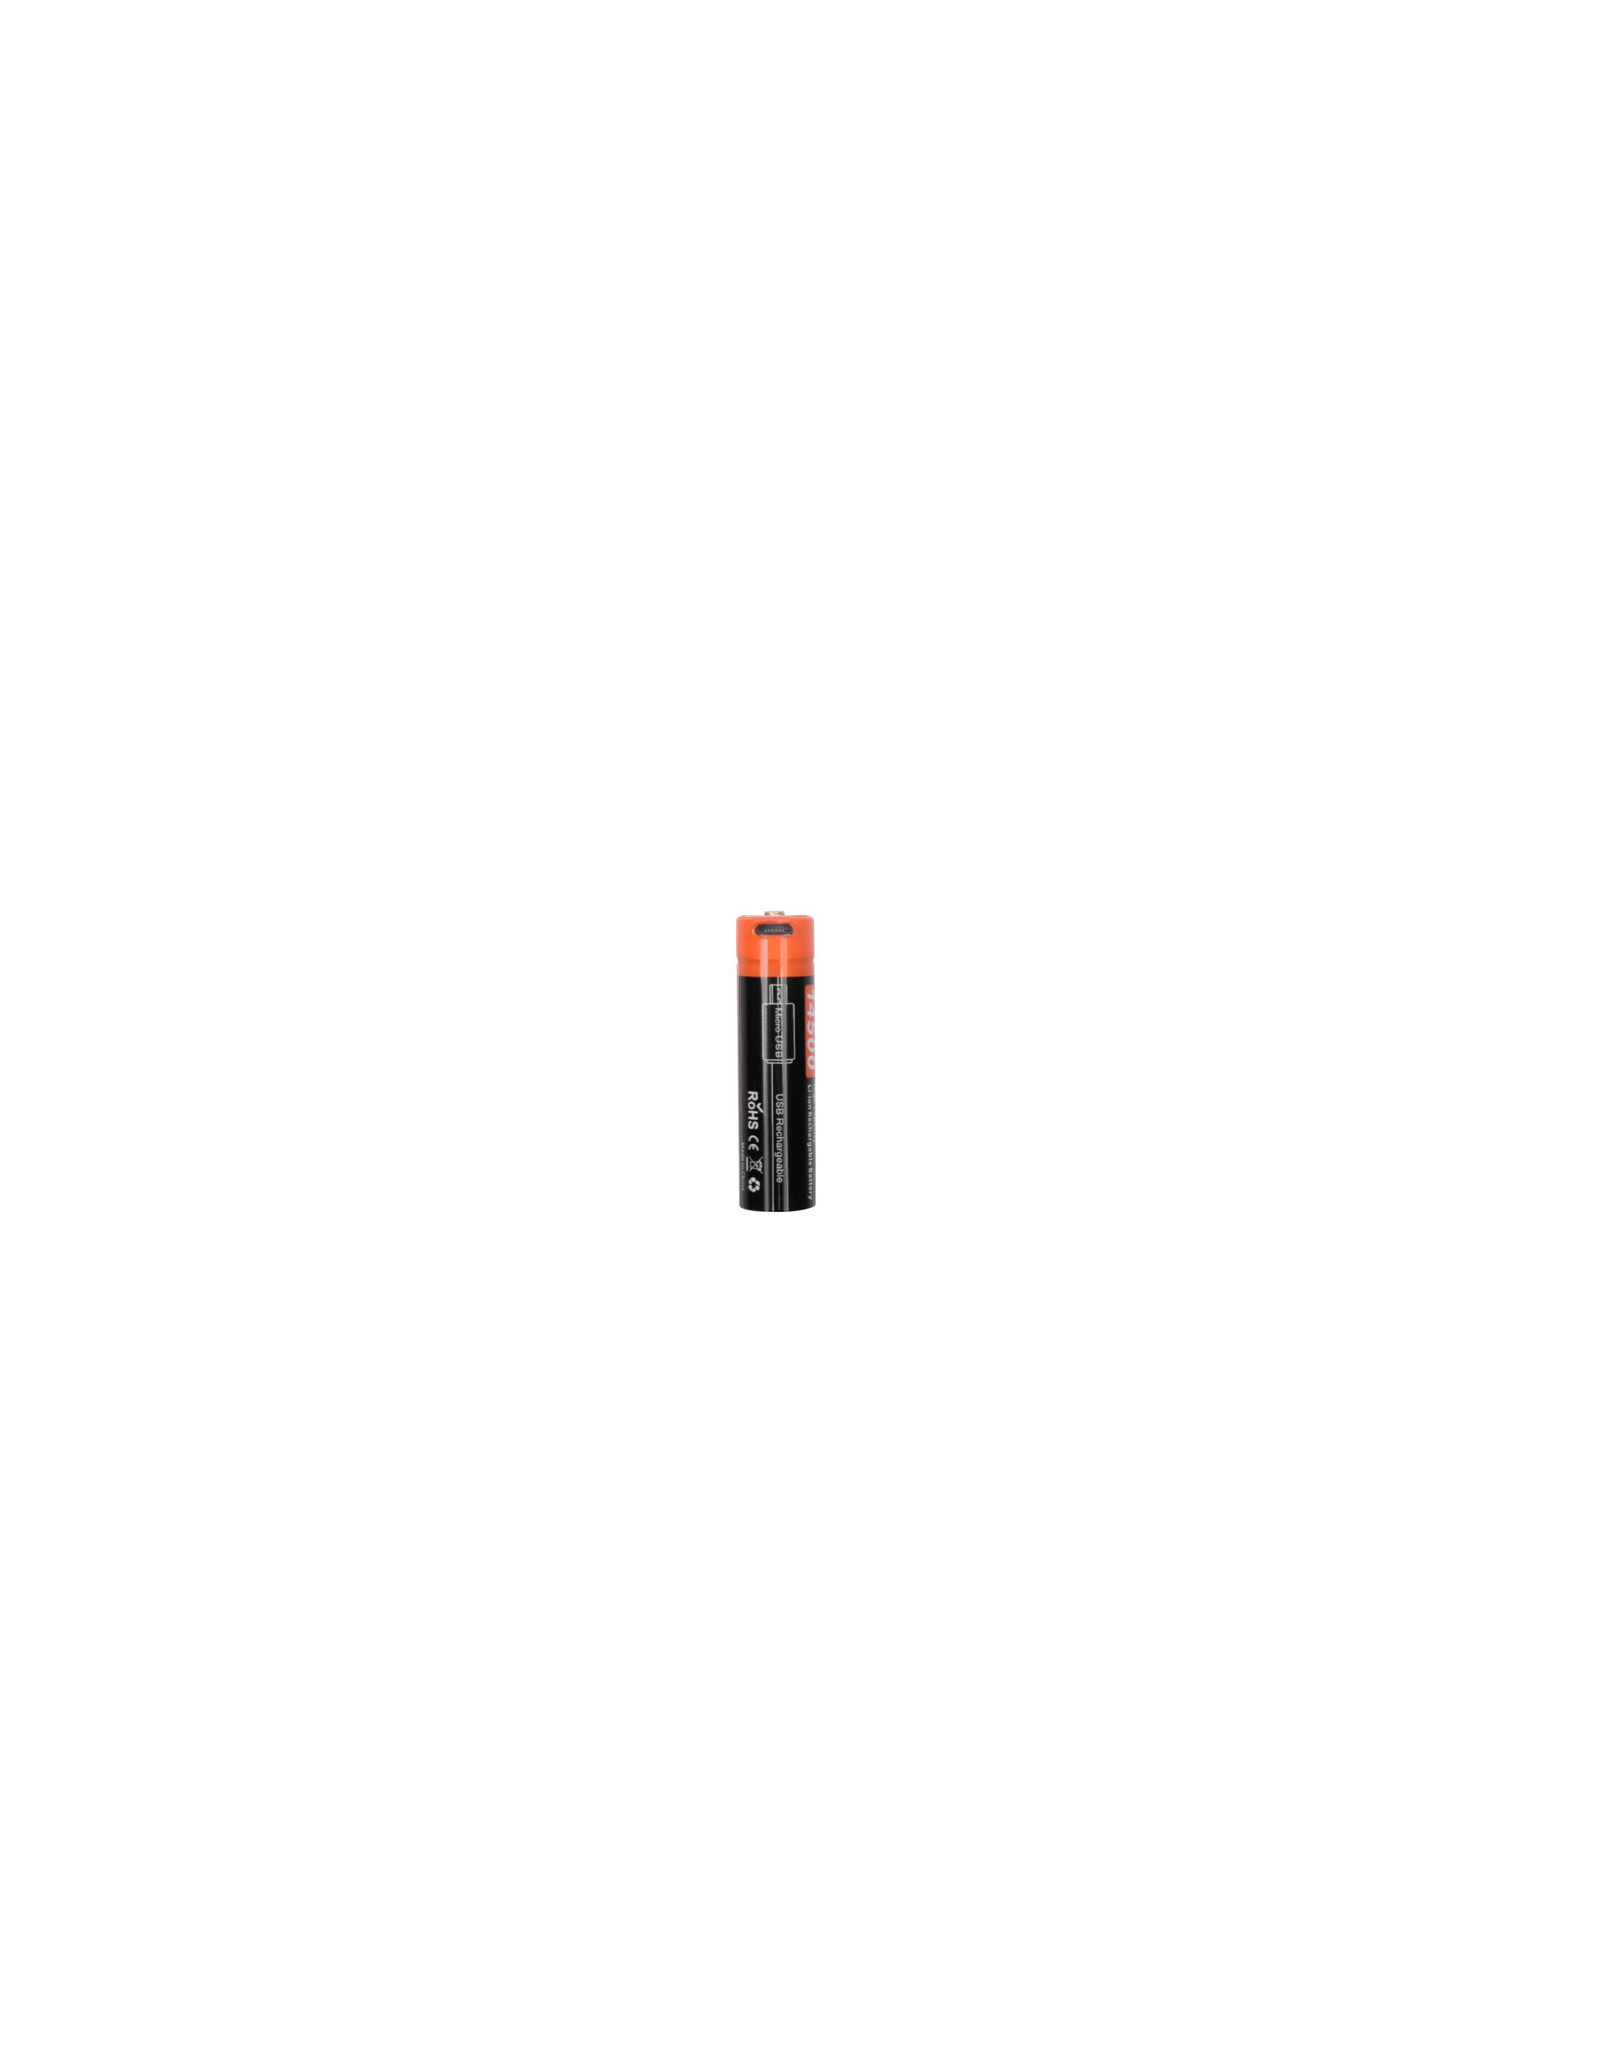 OrcaTorch 14500 USB-Rechargeable Battery